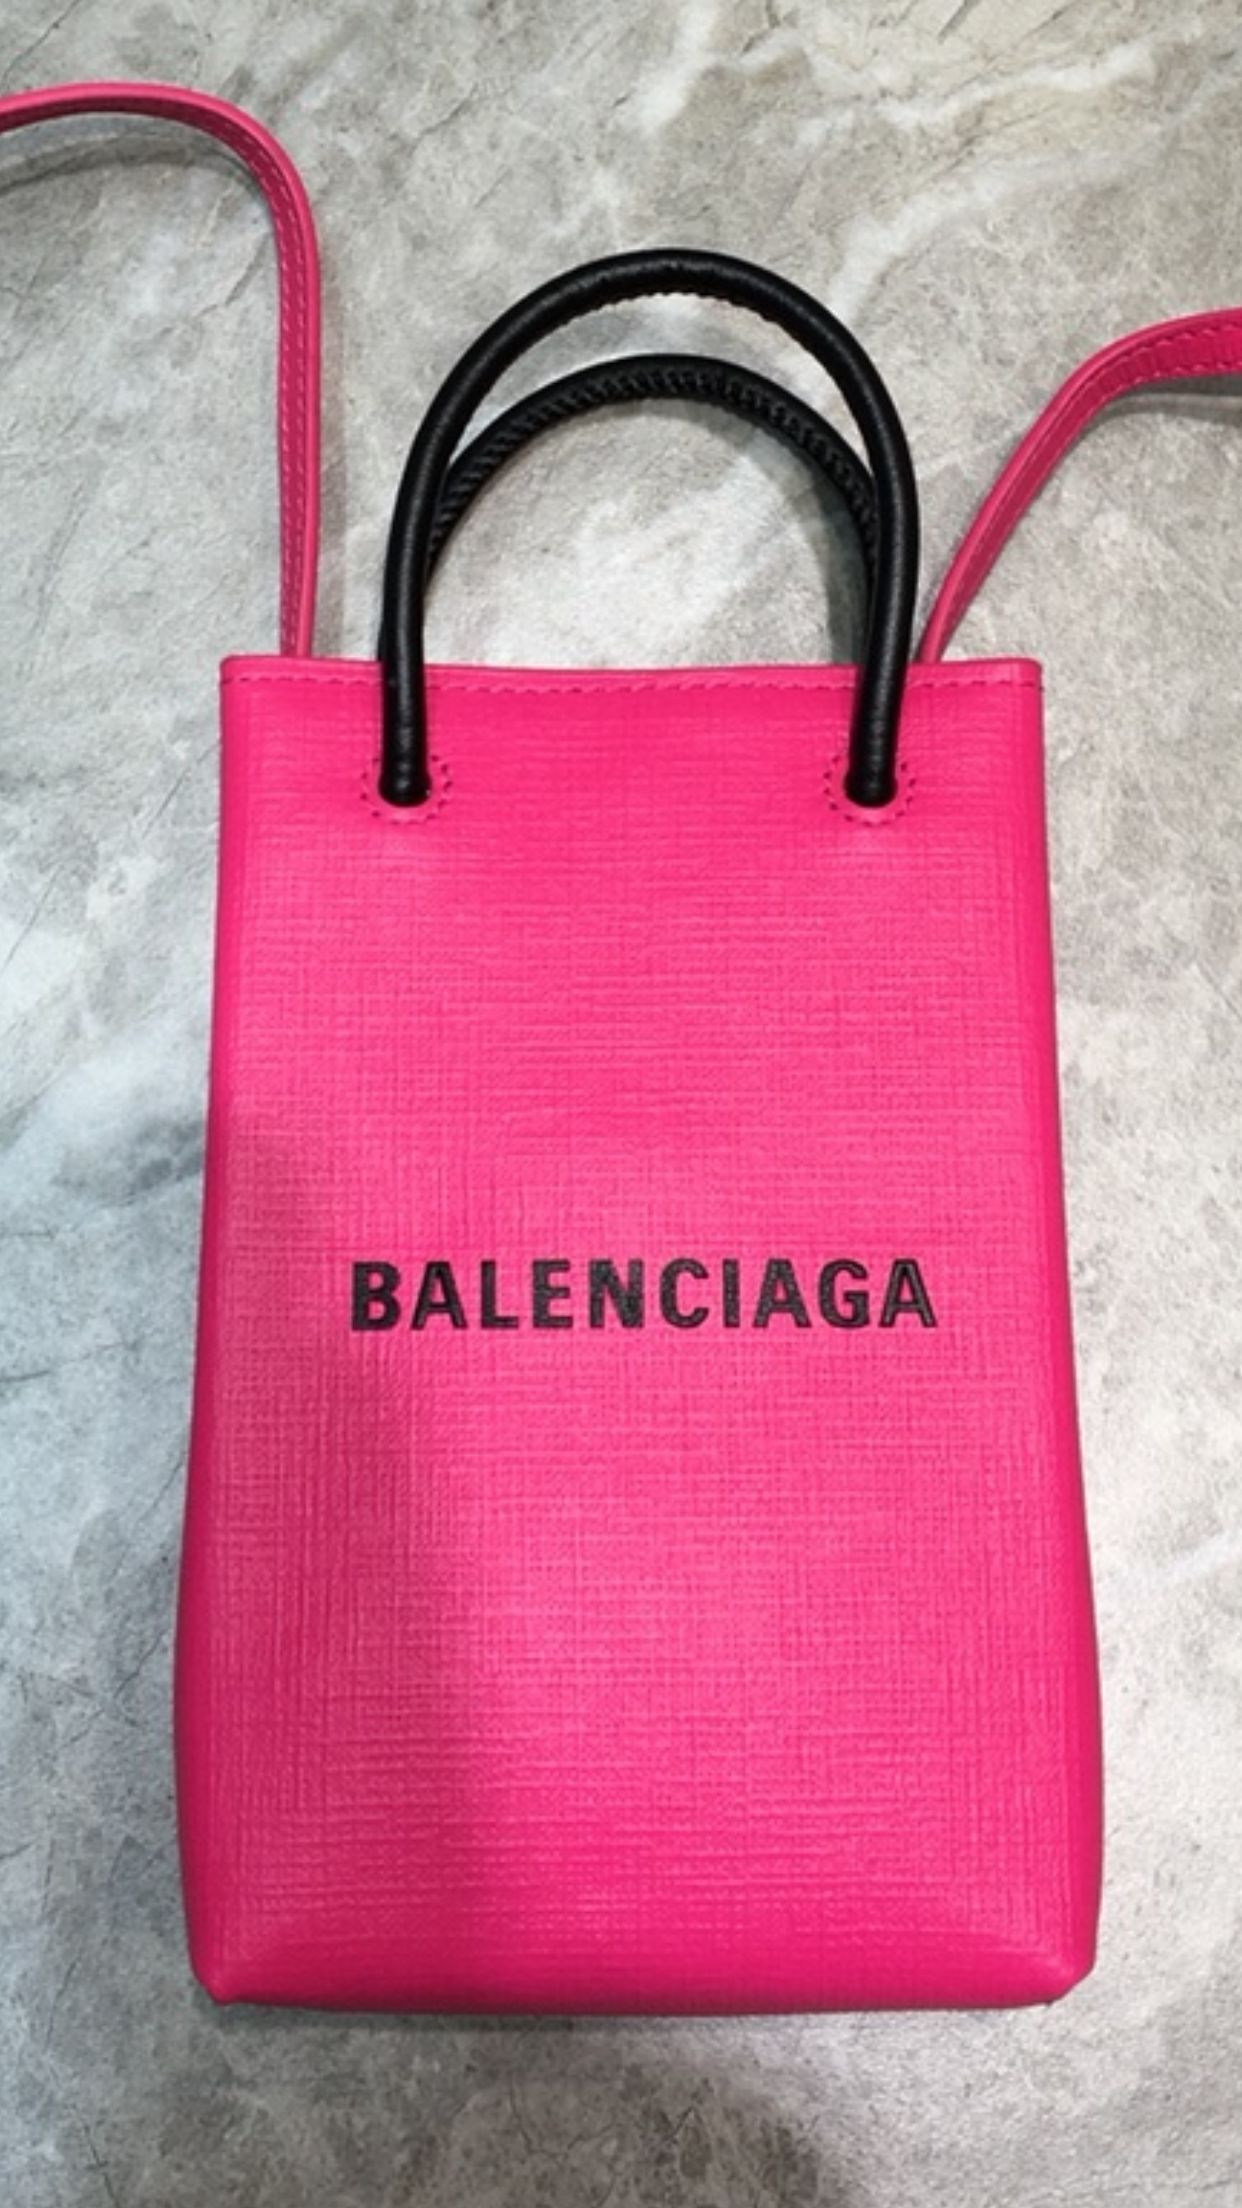 Balenciaga Original Leather Mini Shopper Bag B6123 Pink